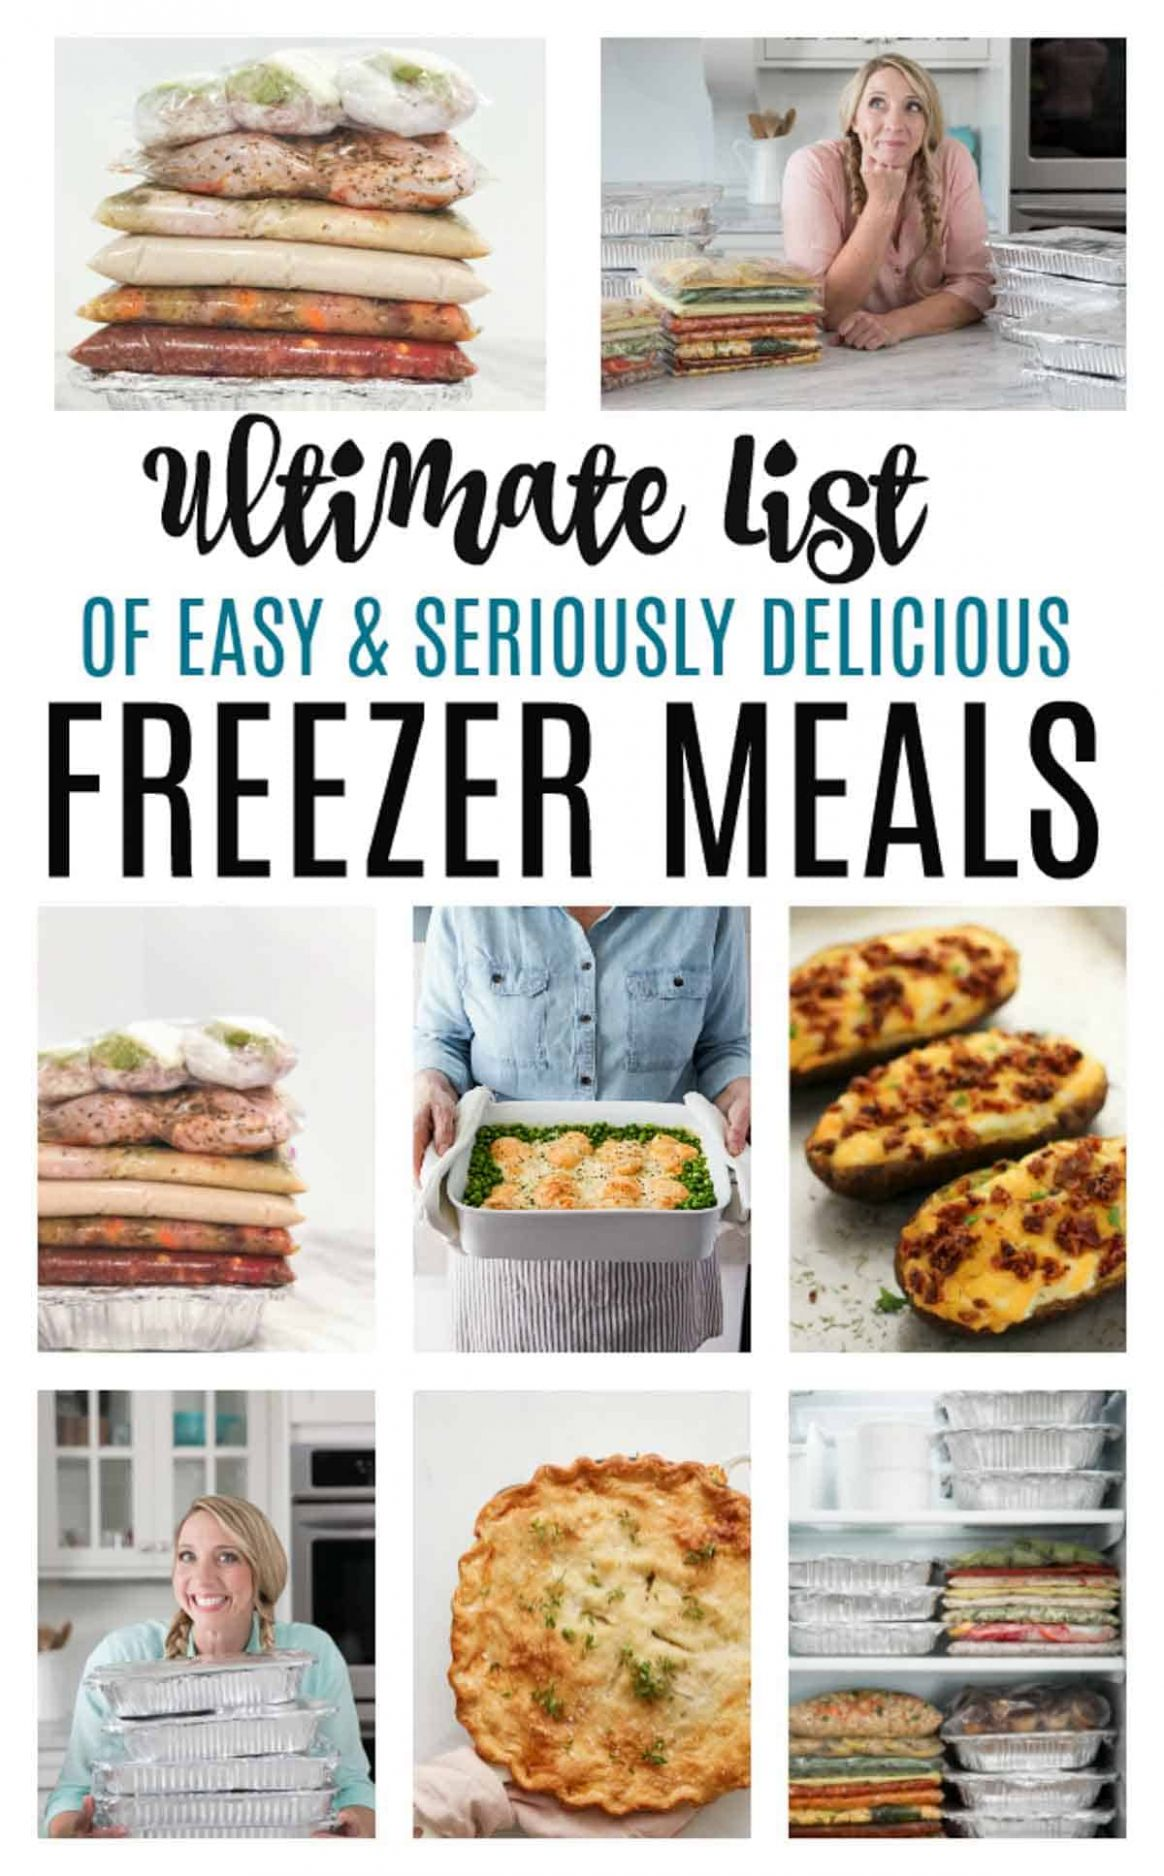 Make Ahead Freezer Meals for a month - Dinner Recipes You Can Prepare In Advance